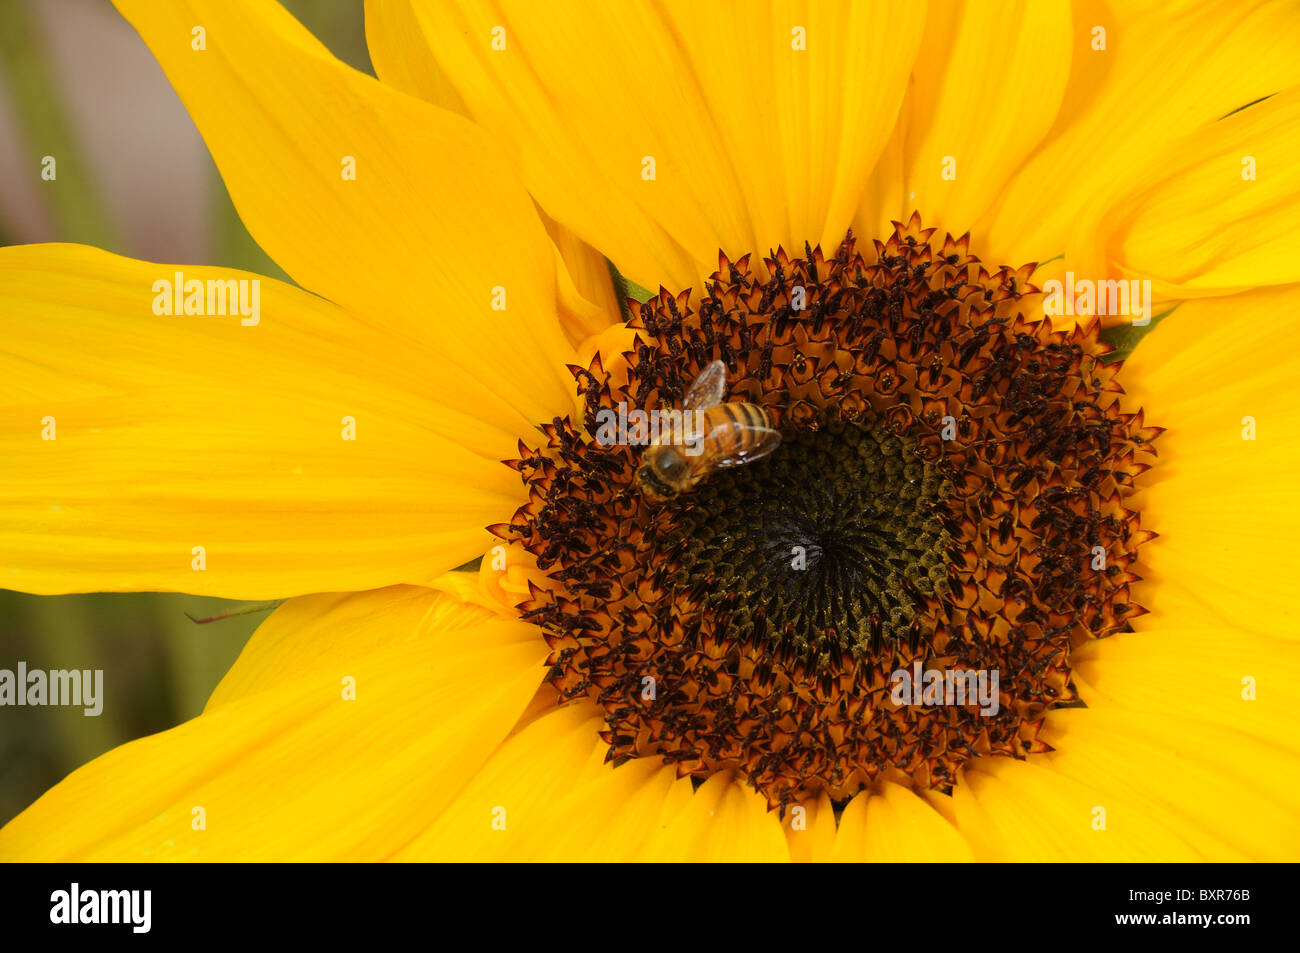 A bee on a sunflower in Tucson, Arizona, USA. - Stock Image